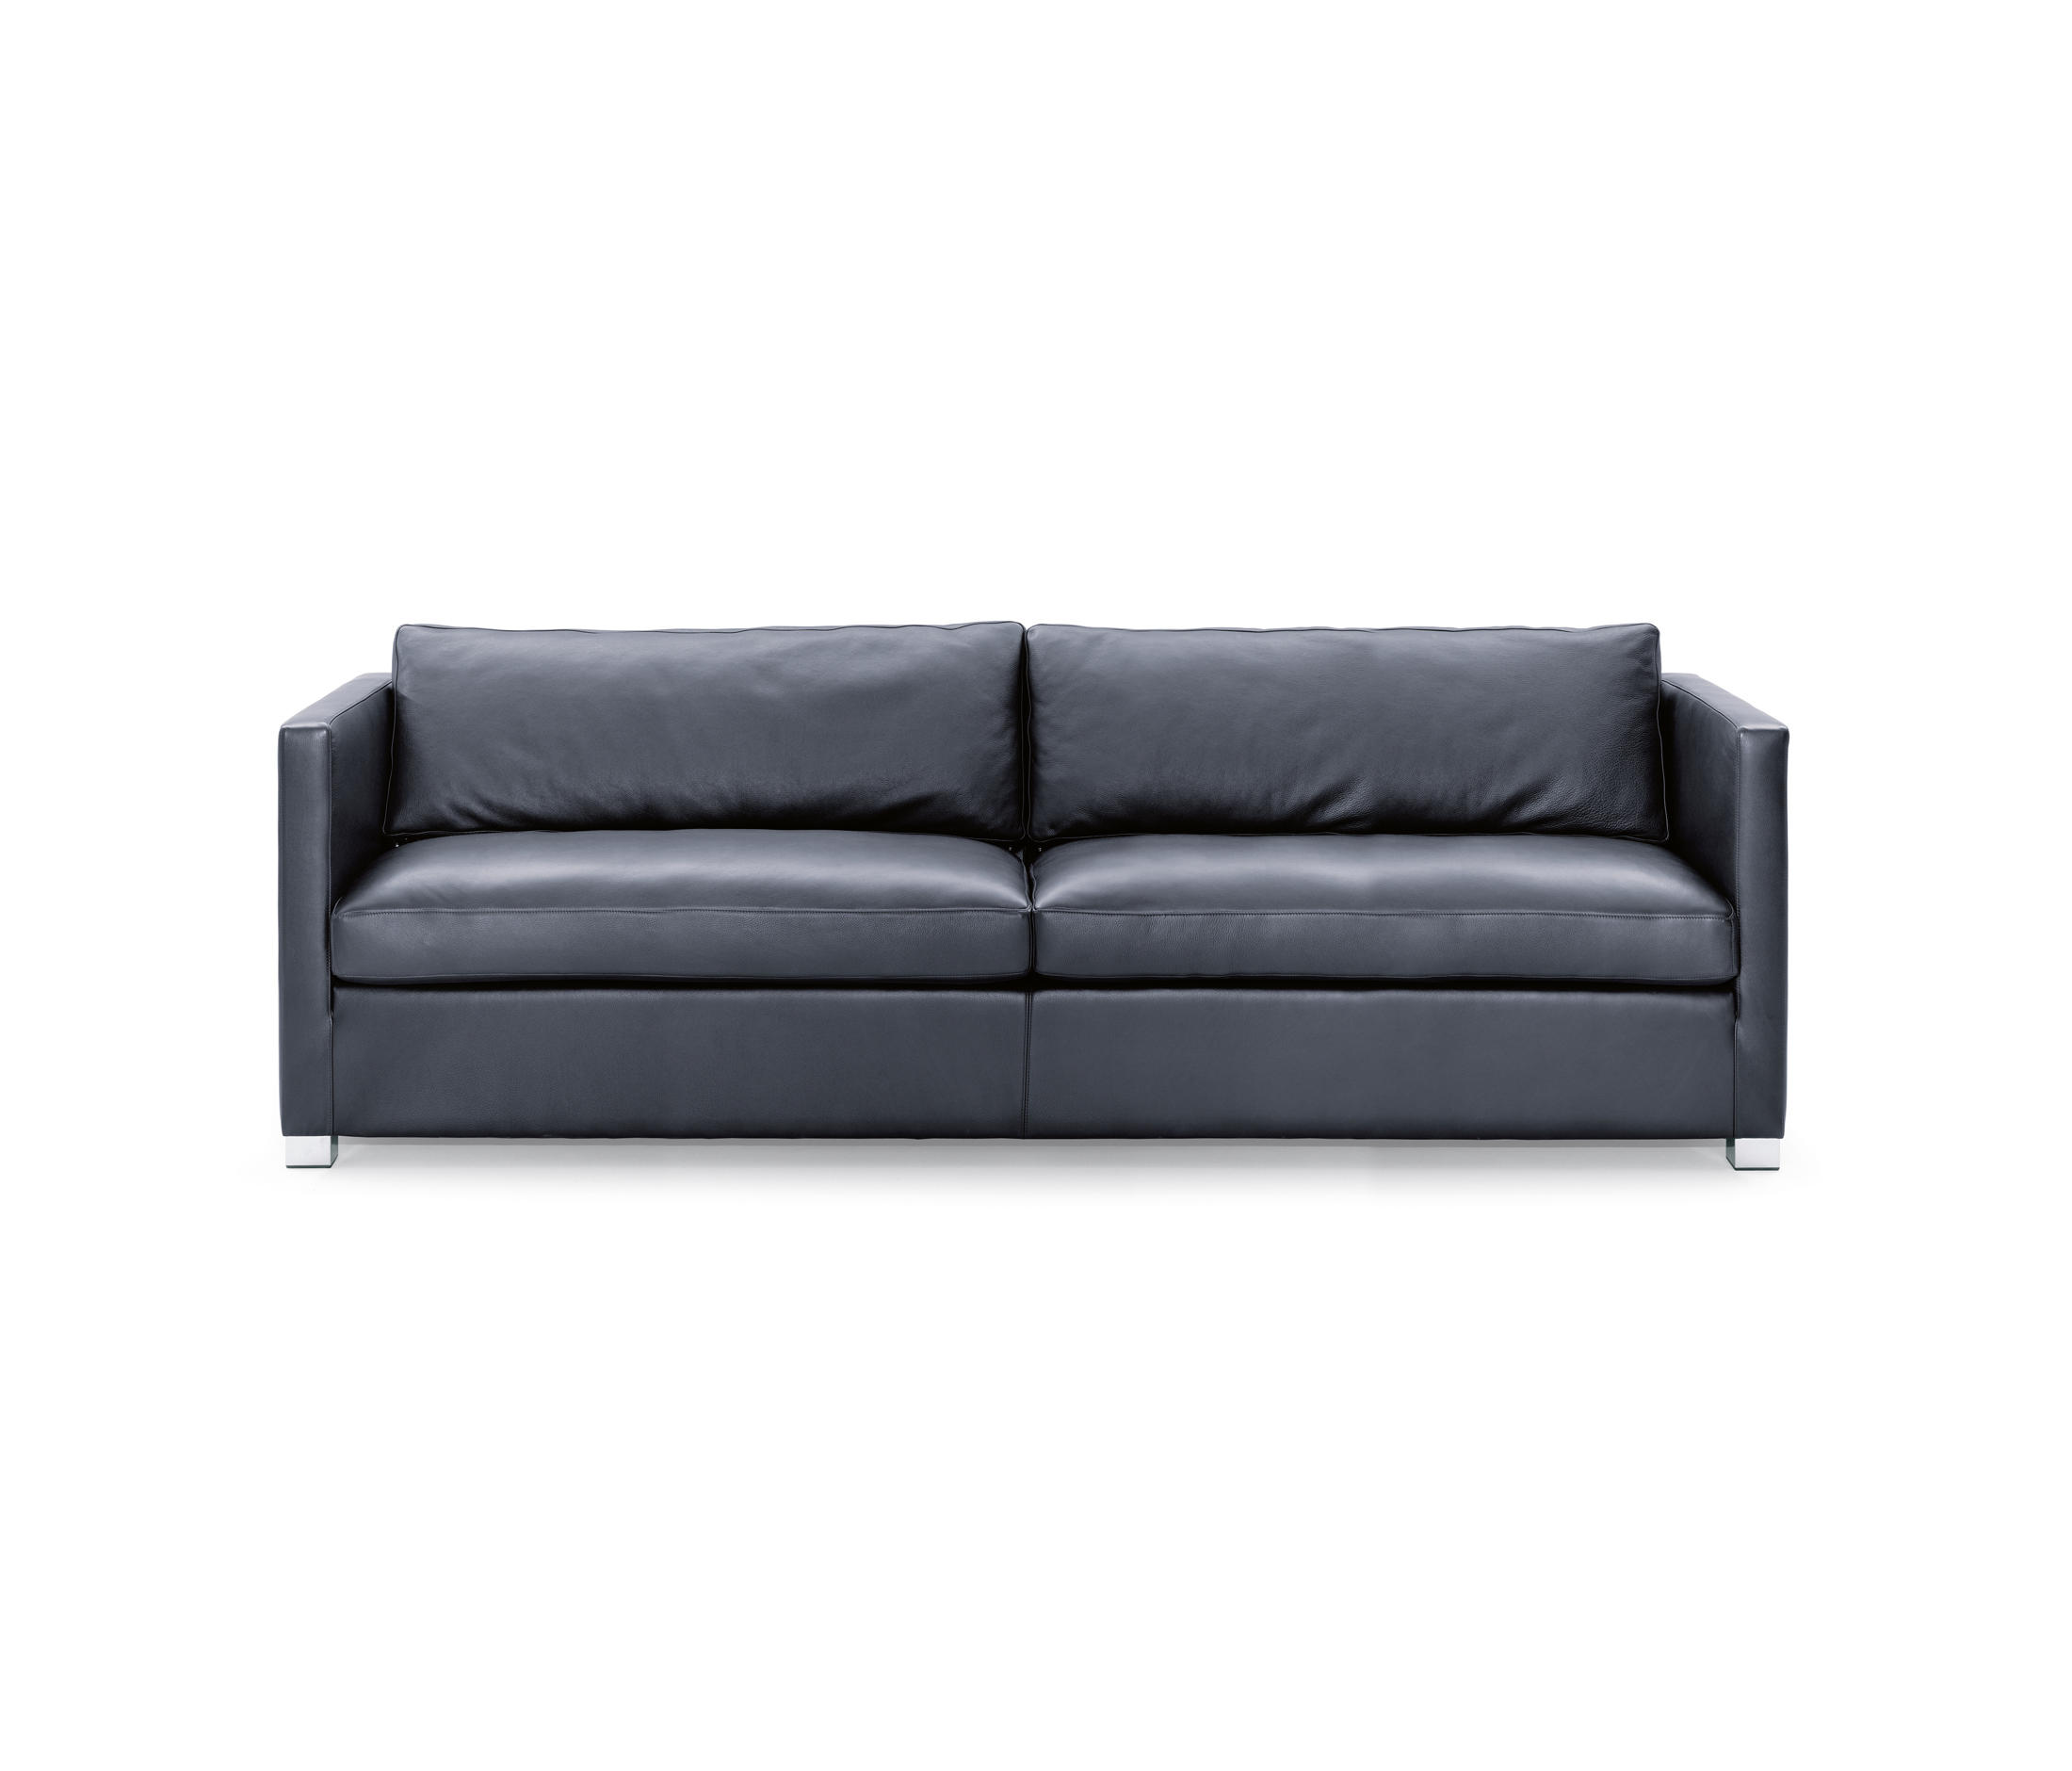 Metro Sofas From Wittmann Architonic